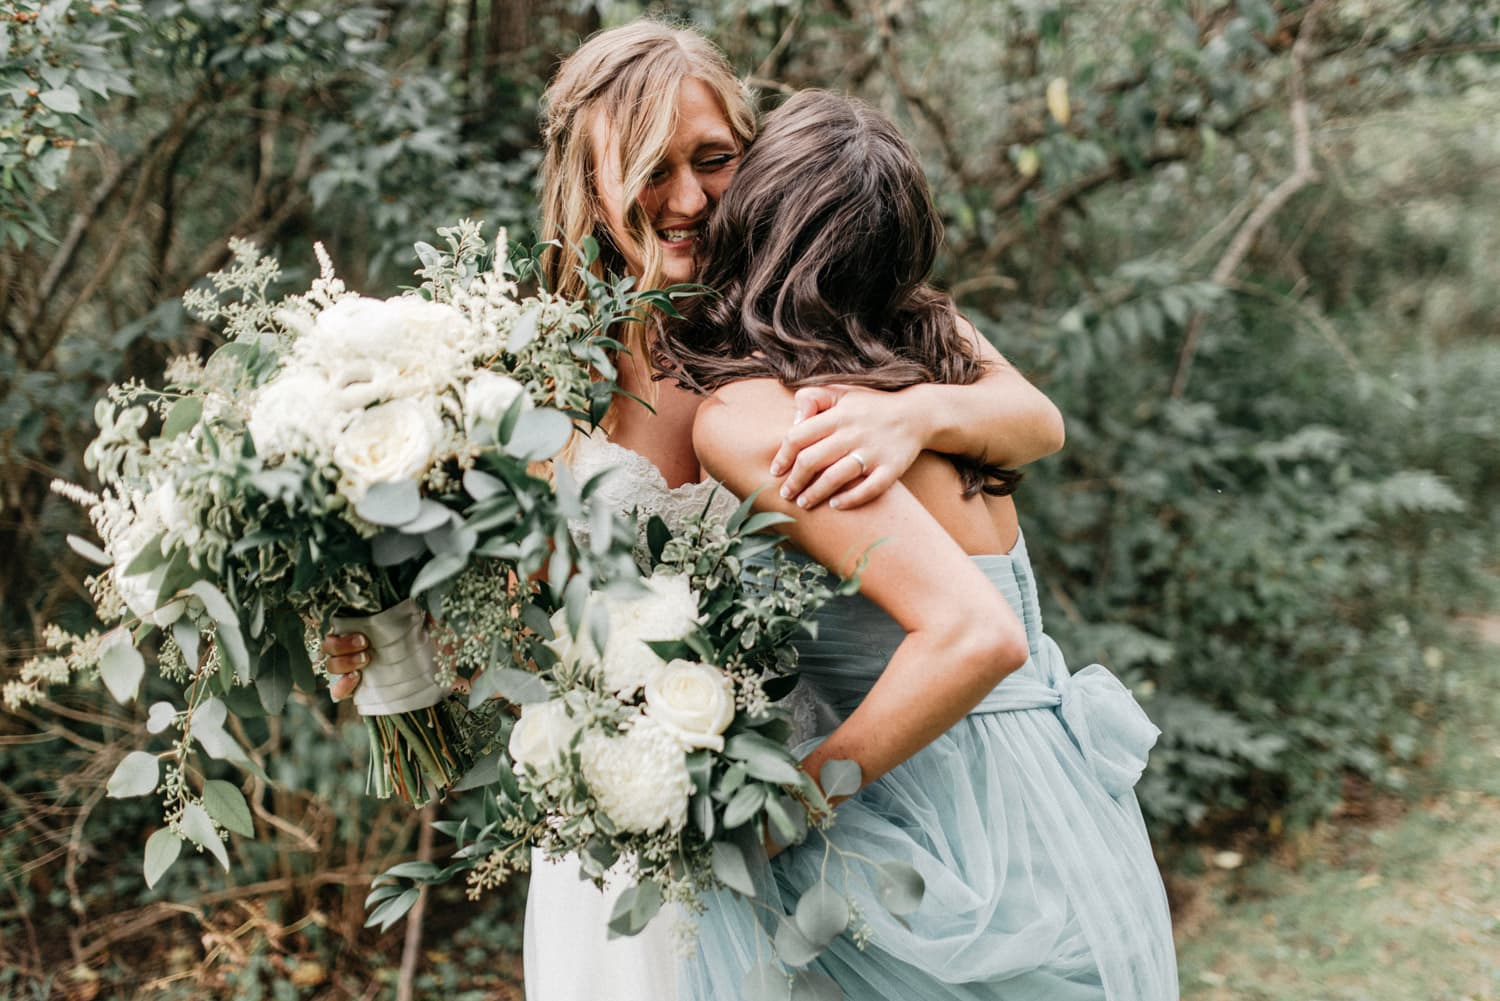 emotional moment between bride and bridesmaid